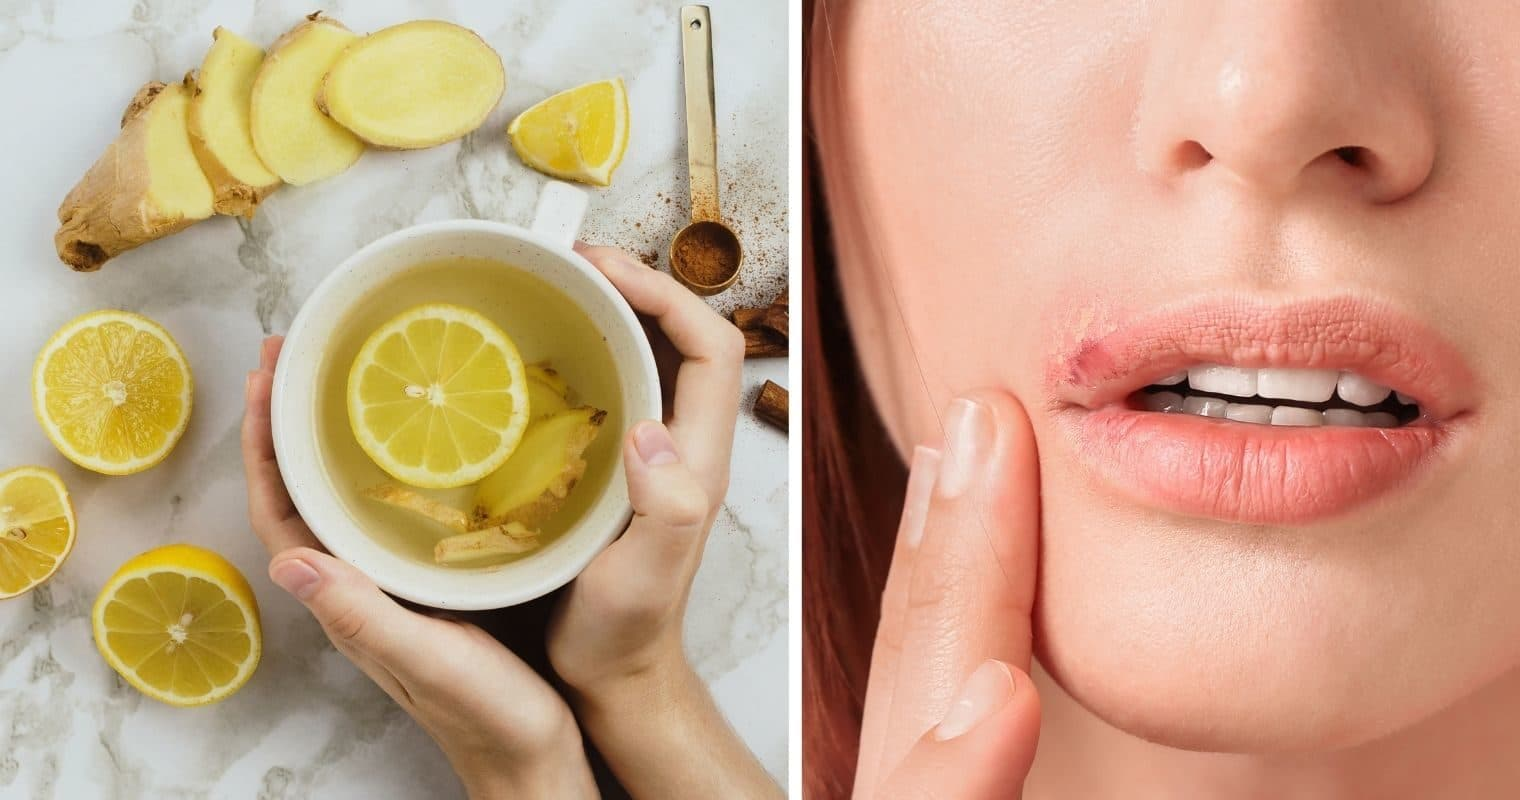 Effective Treatment For Cold Sores